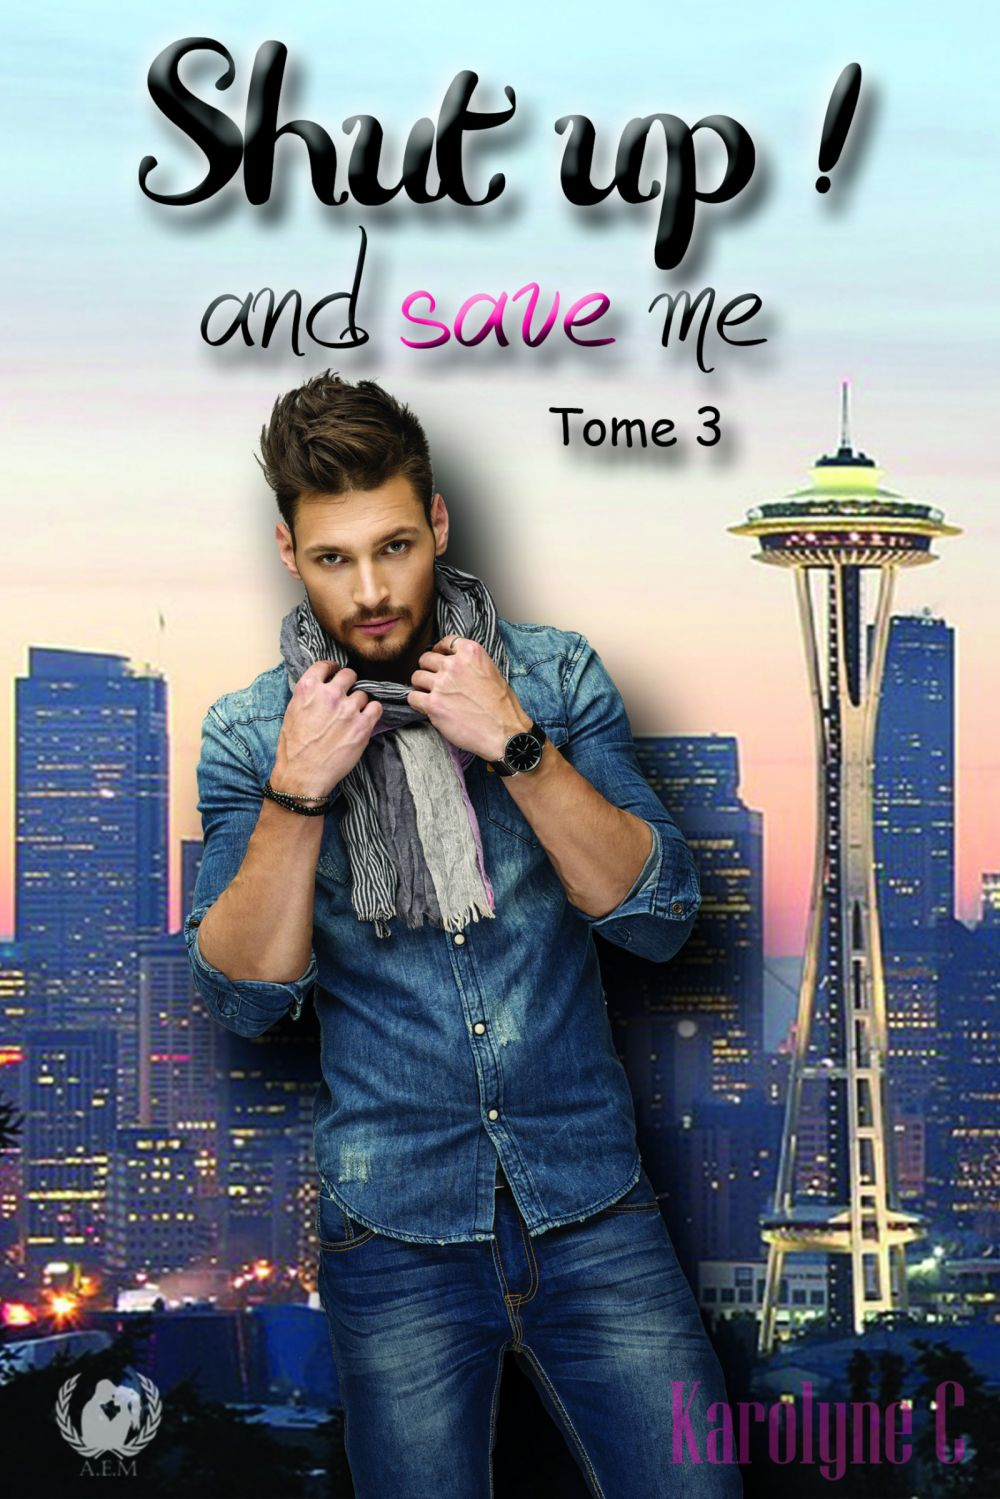 Shut up ! And save me - Tome 3